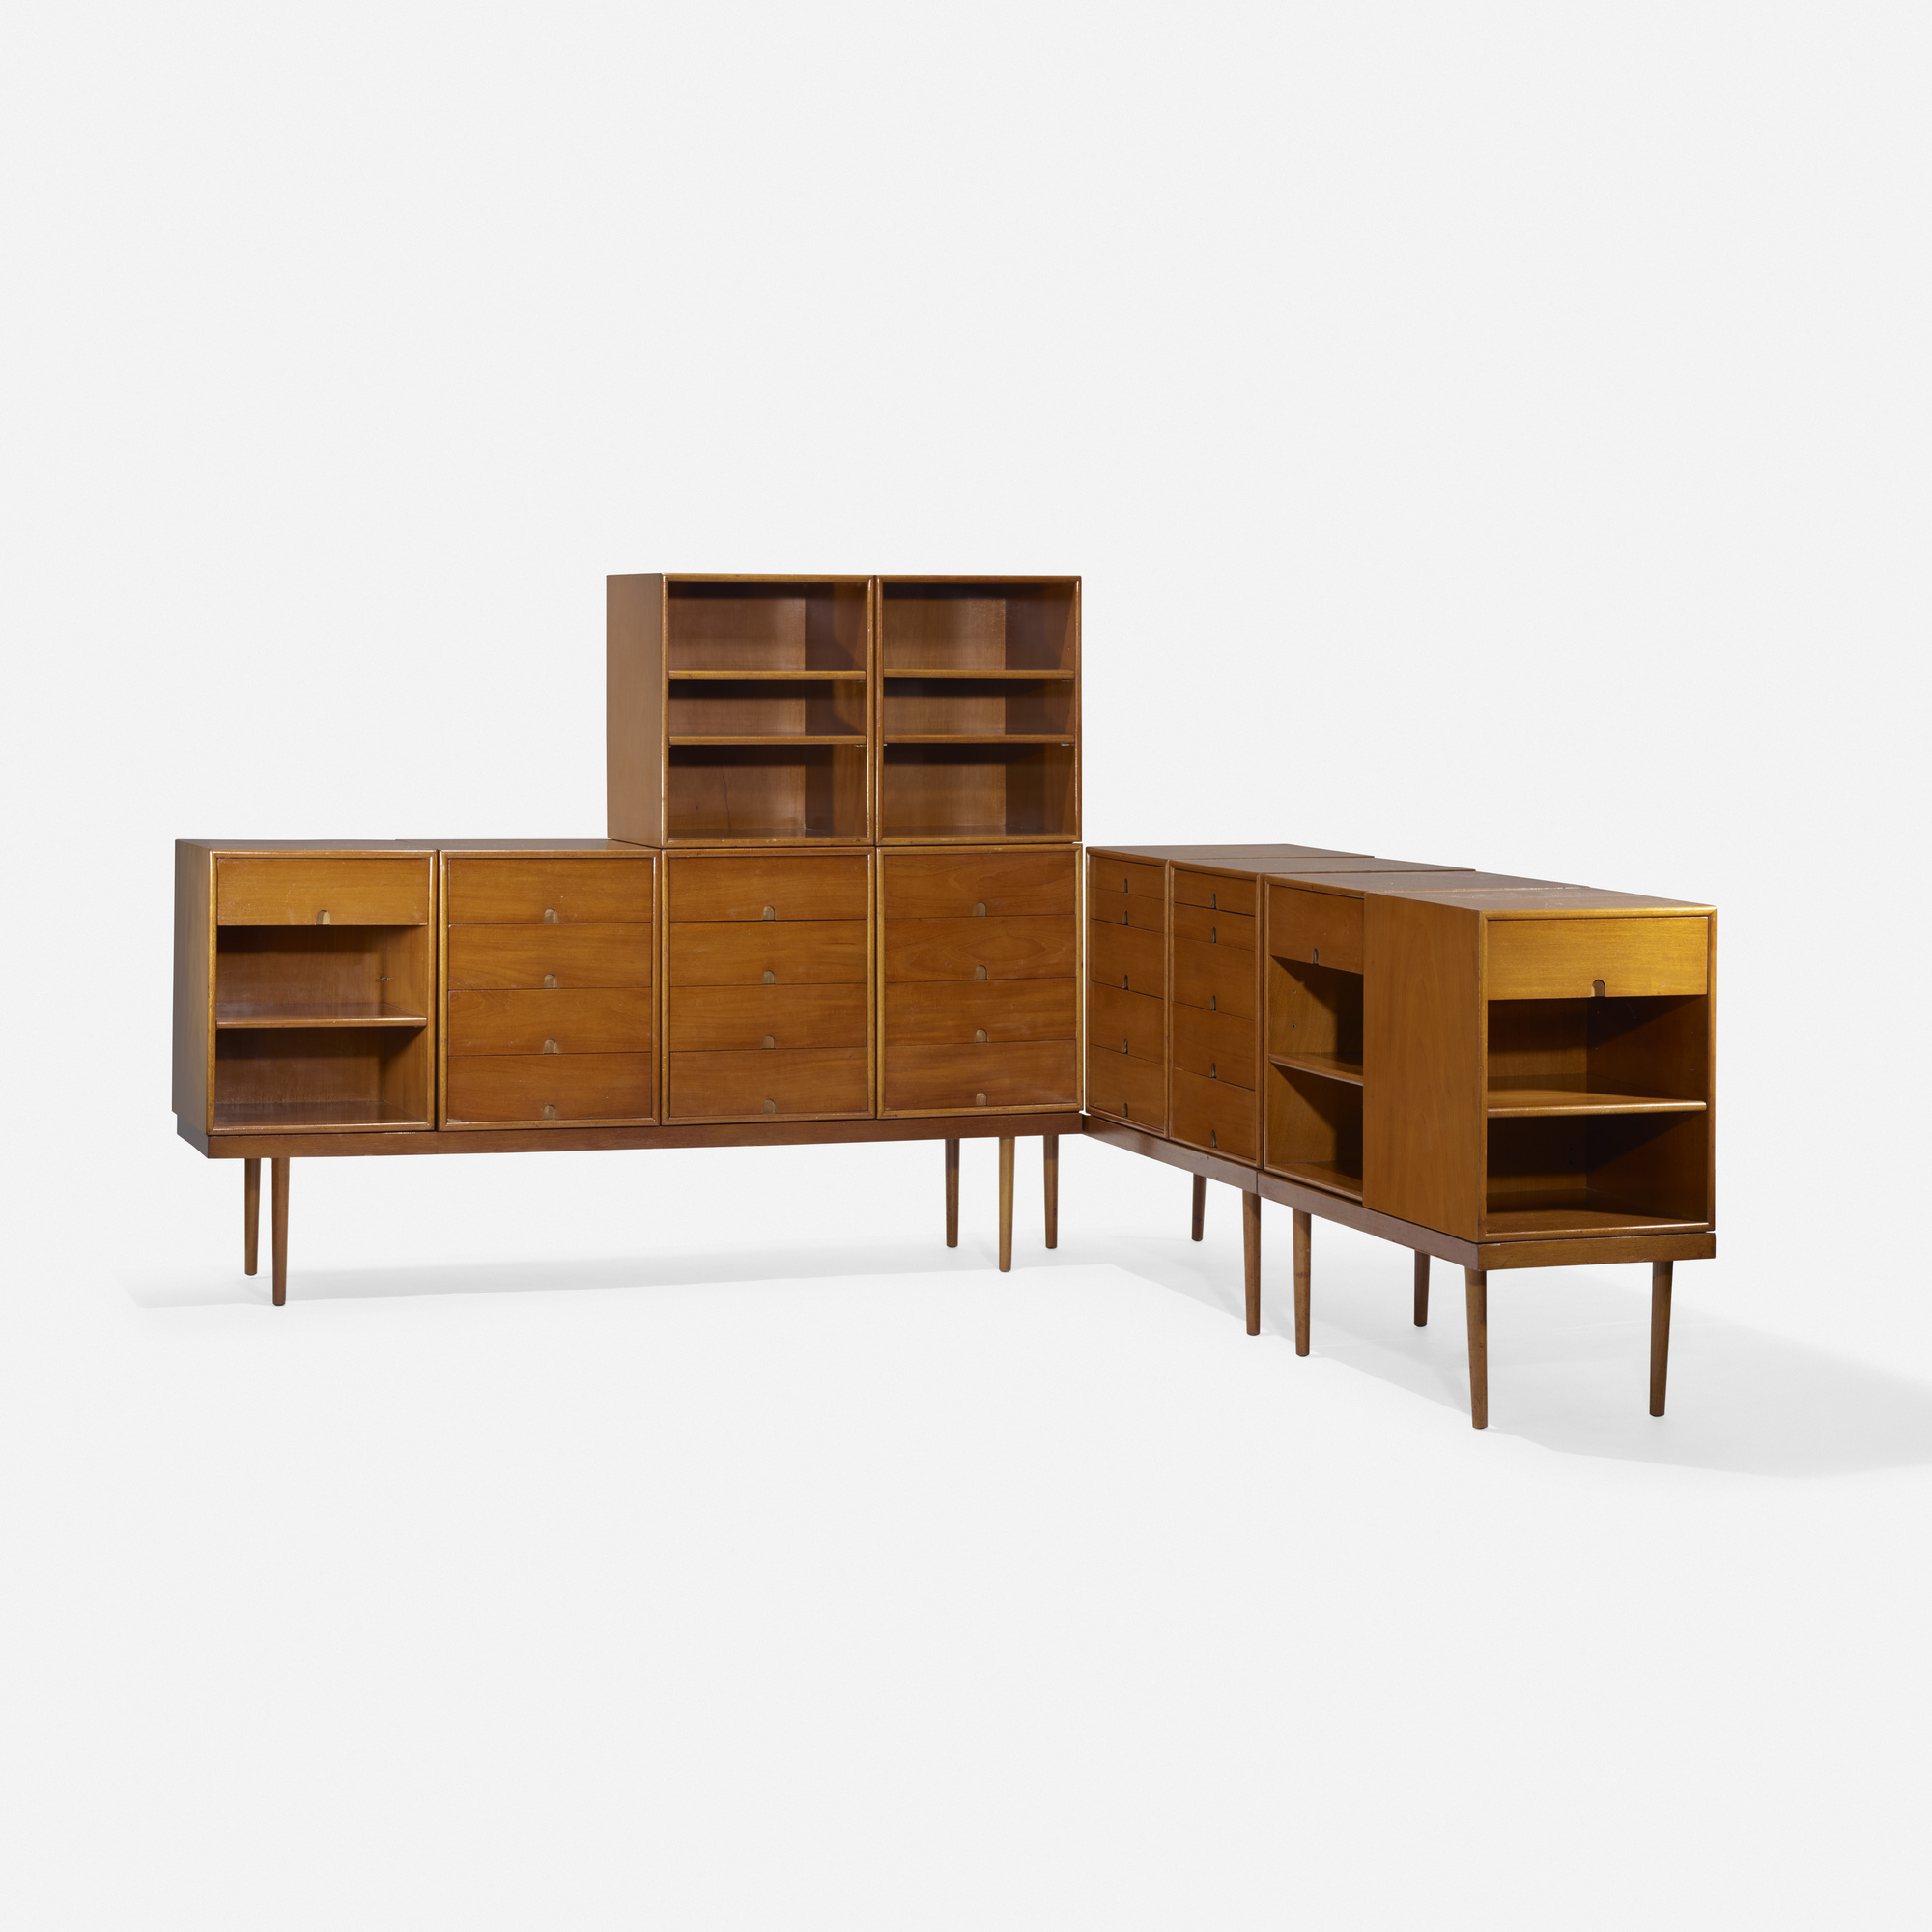 120: Charles Eames and Eero Saarinen / storage units for the Organic Design Competition (1 of 2)